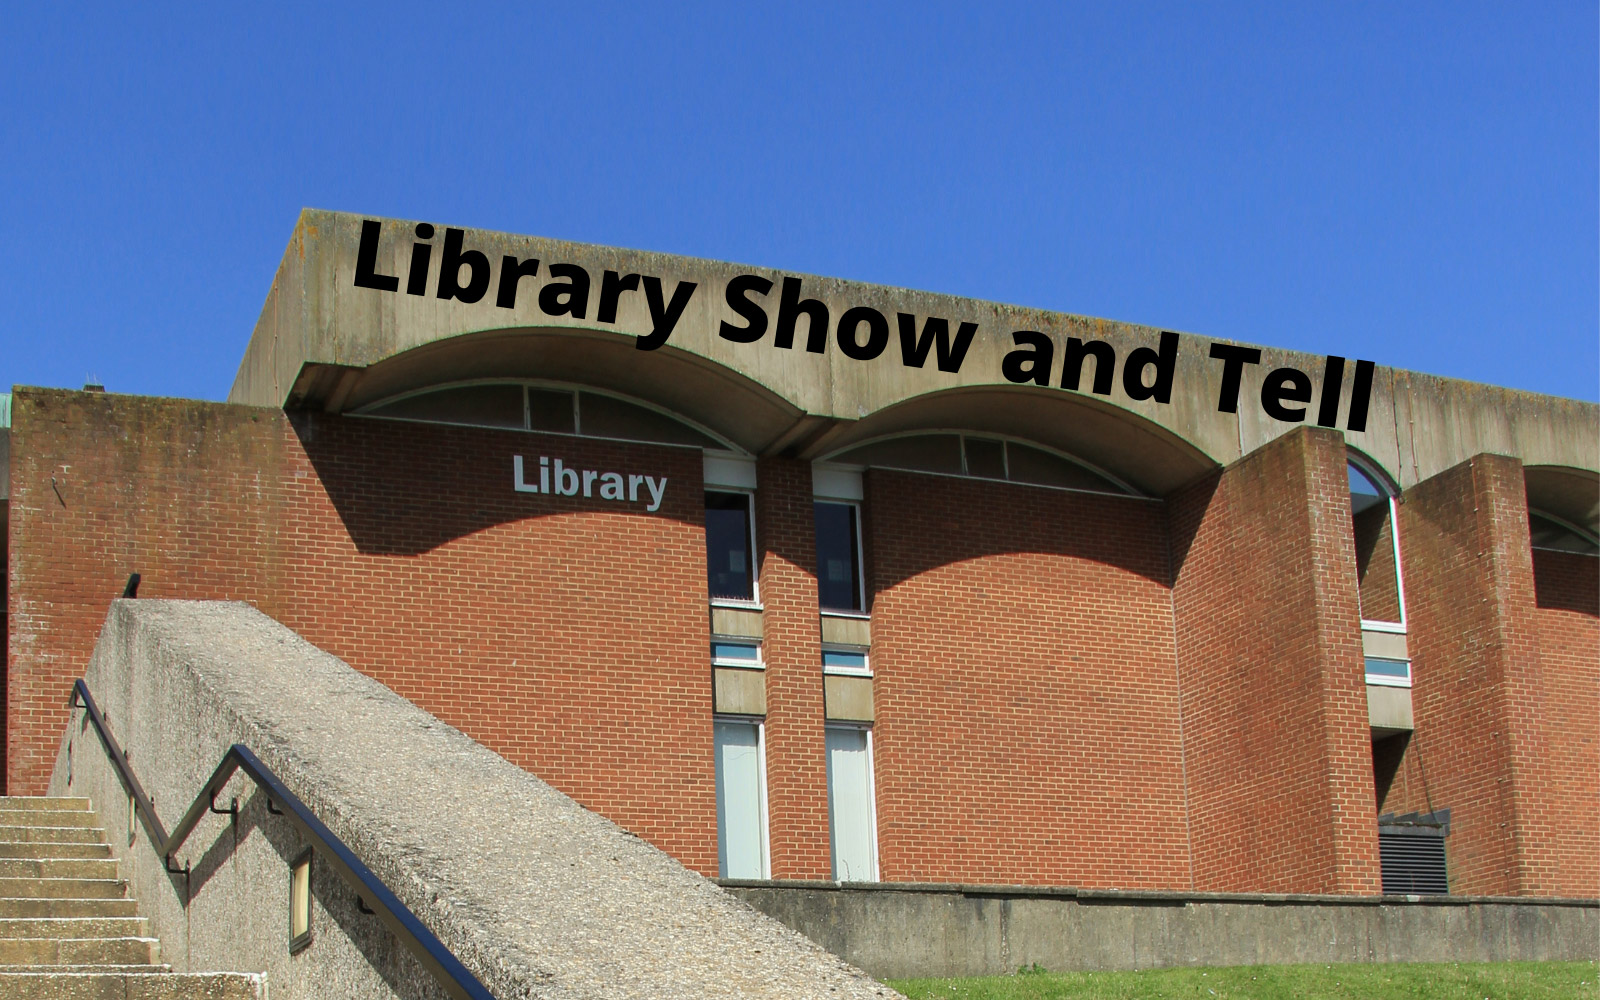 Library Show and Tell  banner